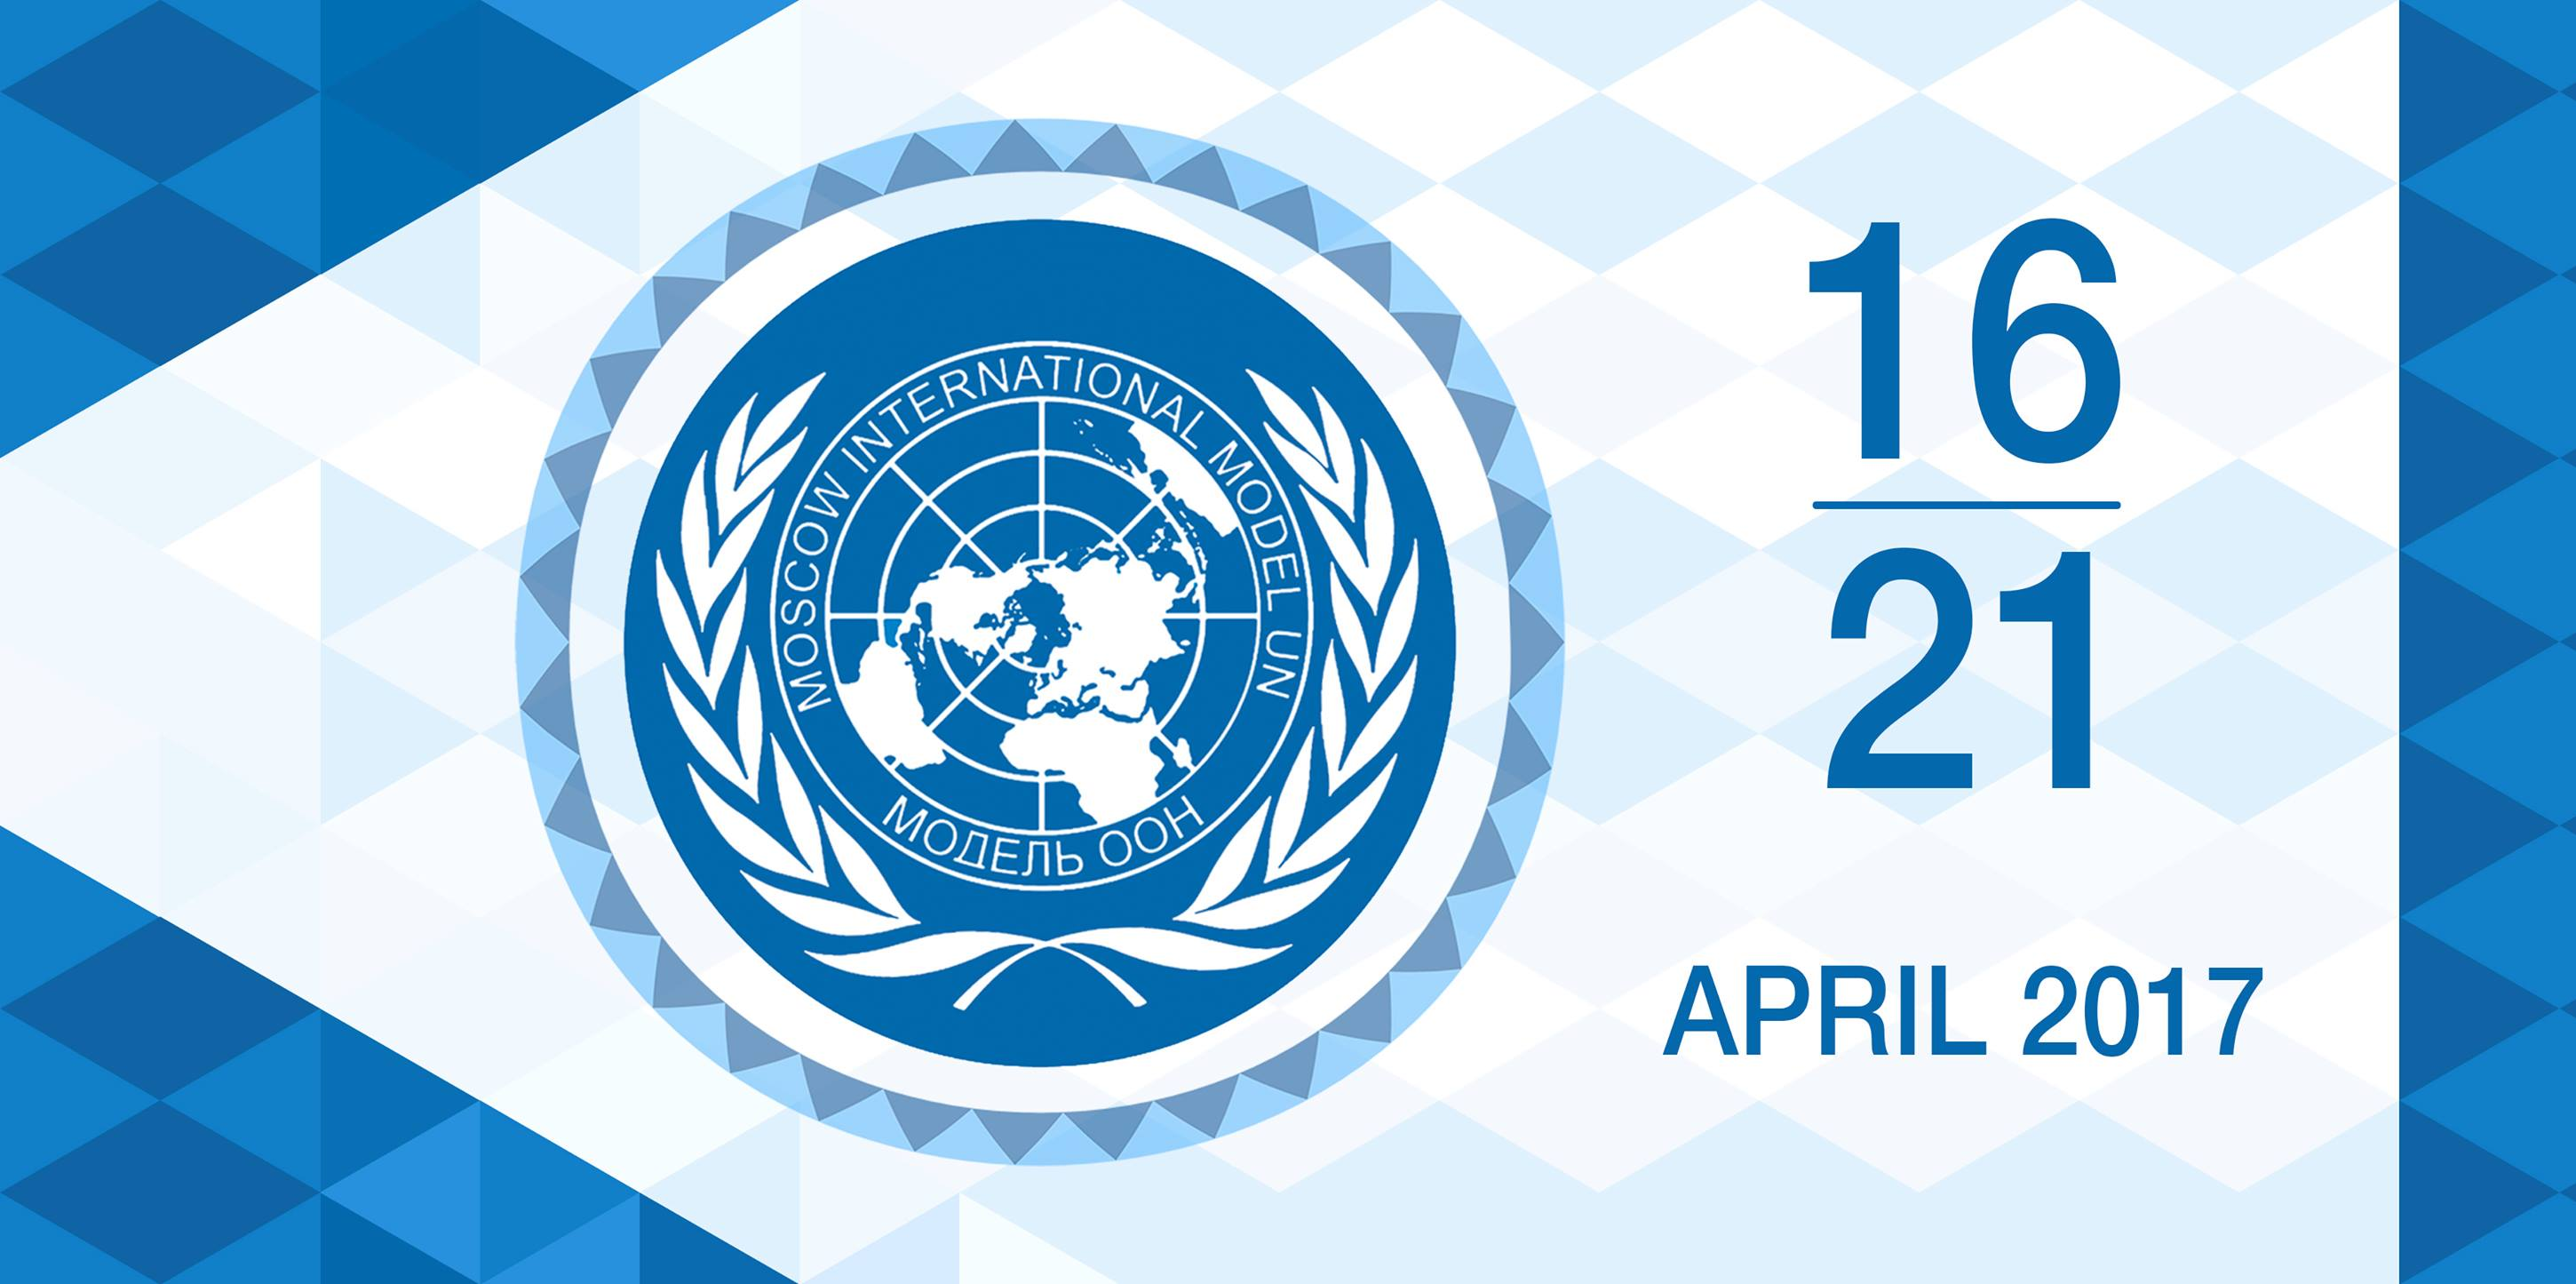 Moscow International Model United Nations (MIMUN)